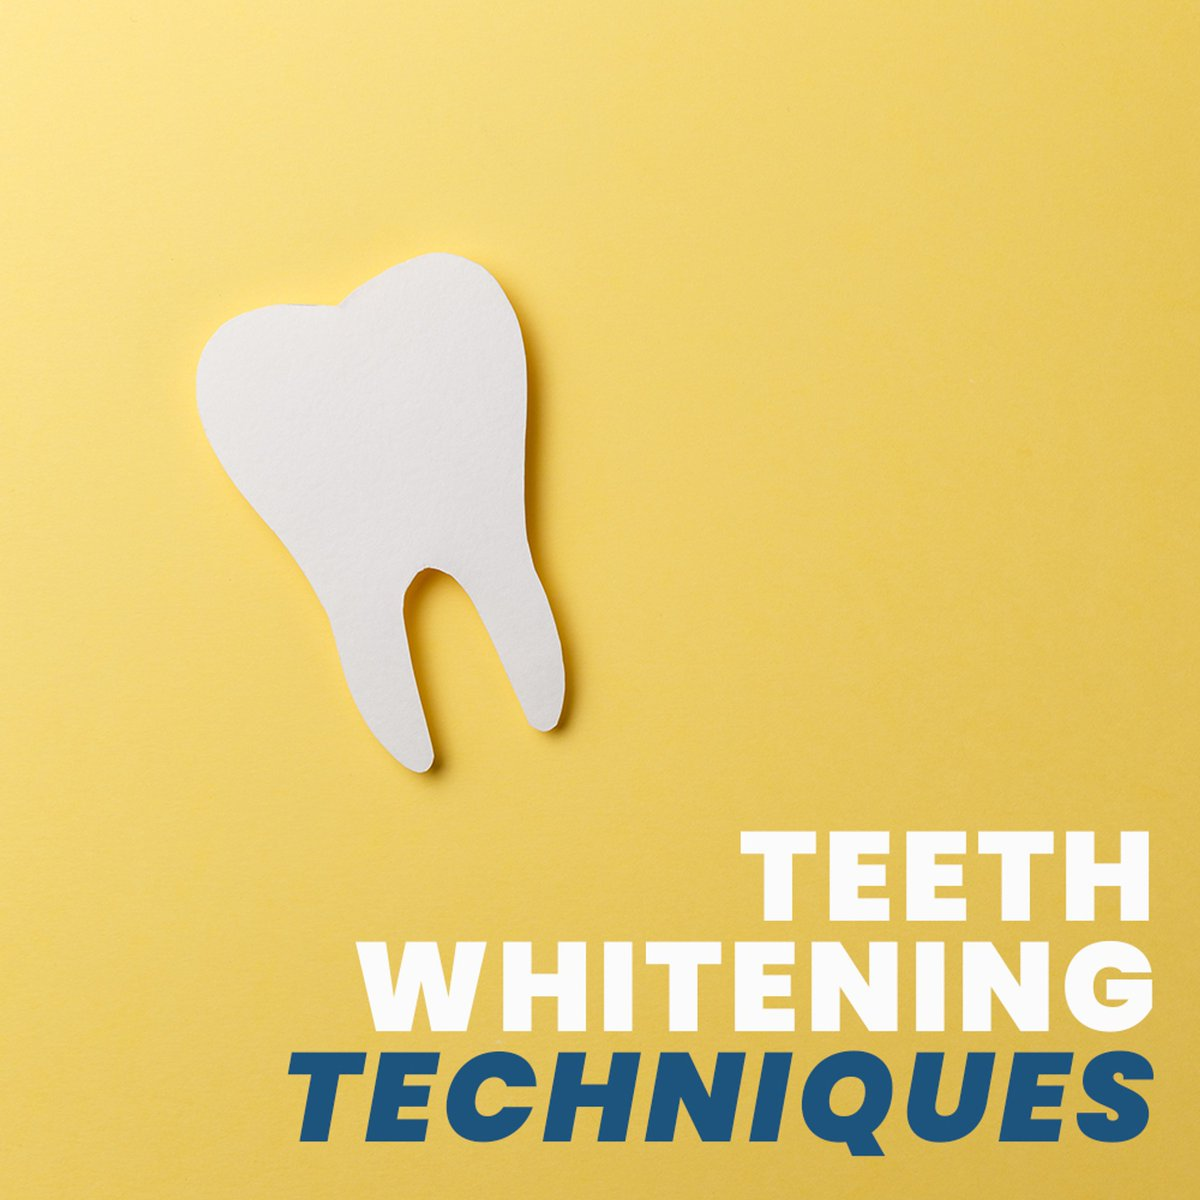 Are your teeth showing the signs of your coffee habit? Many people want a whiter smile, but are unsure of which #whitening technique to use.  Contact us and we can get your smile the bright, white shade you're looking for.  #teethwhitening #cosmeticdentistry #dentistrypic.twitter.com/DSEXZfQ6al